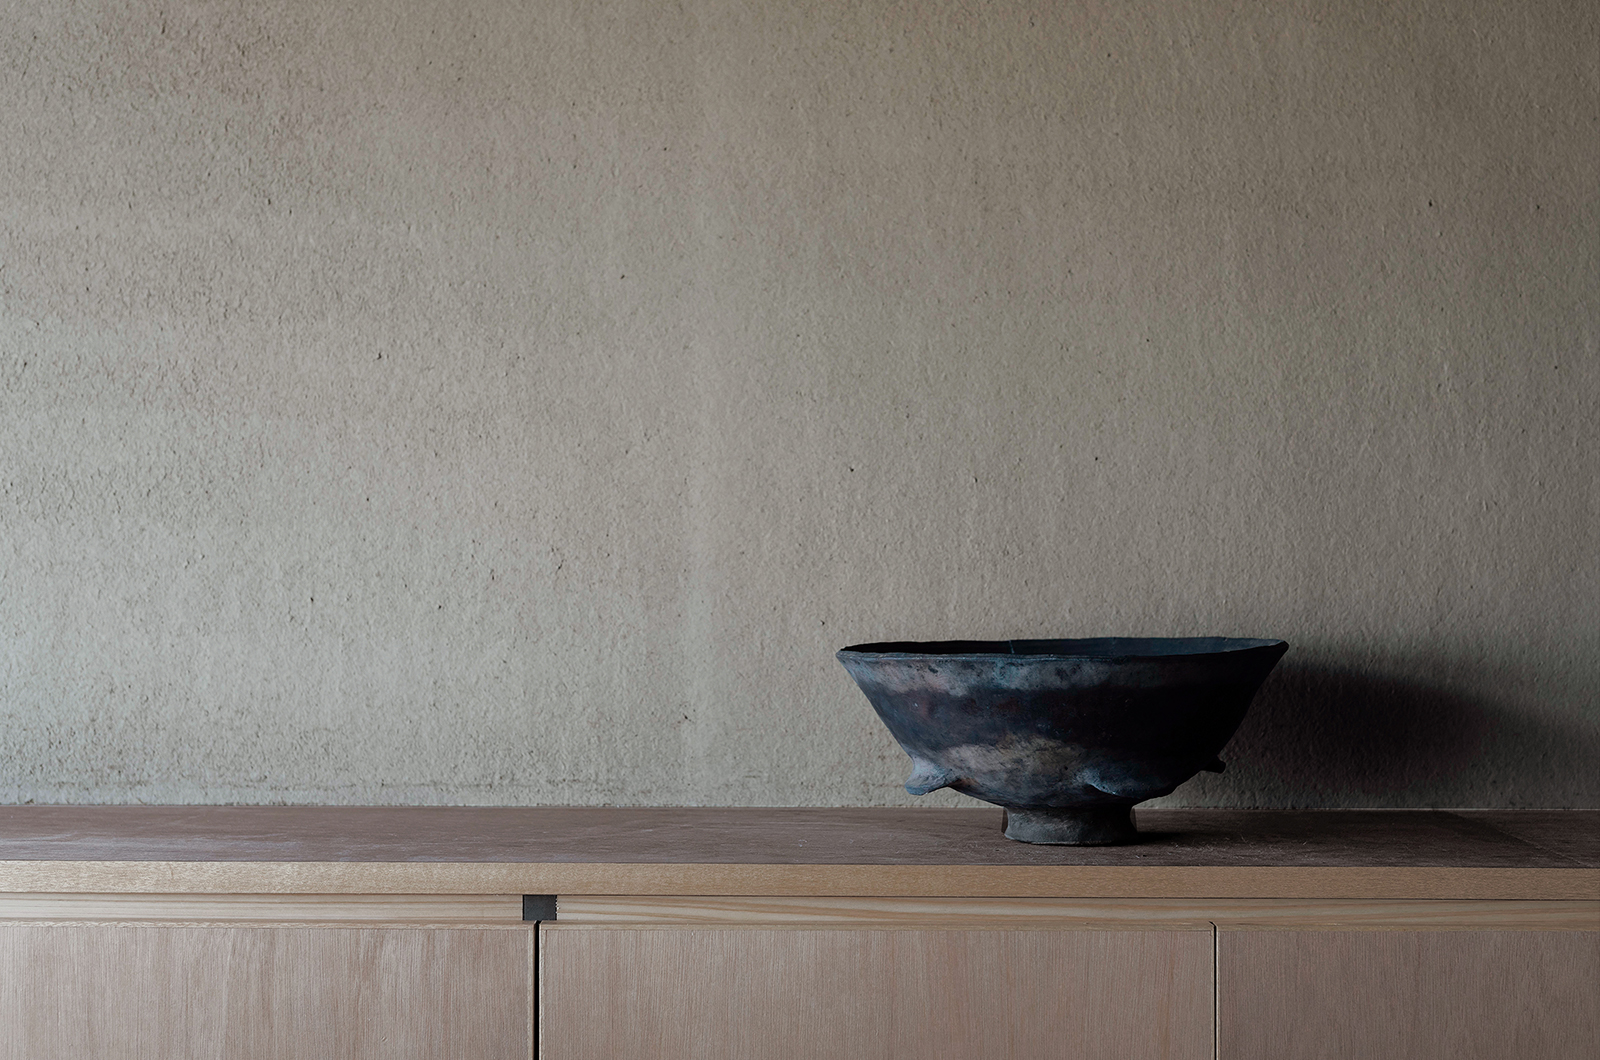 Maana Kamo pottery on kitchen counter